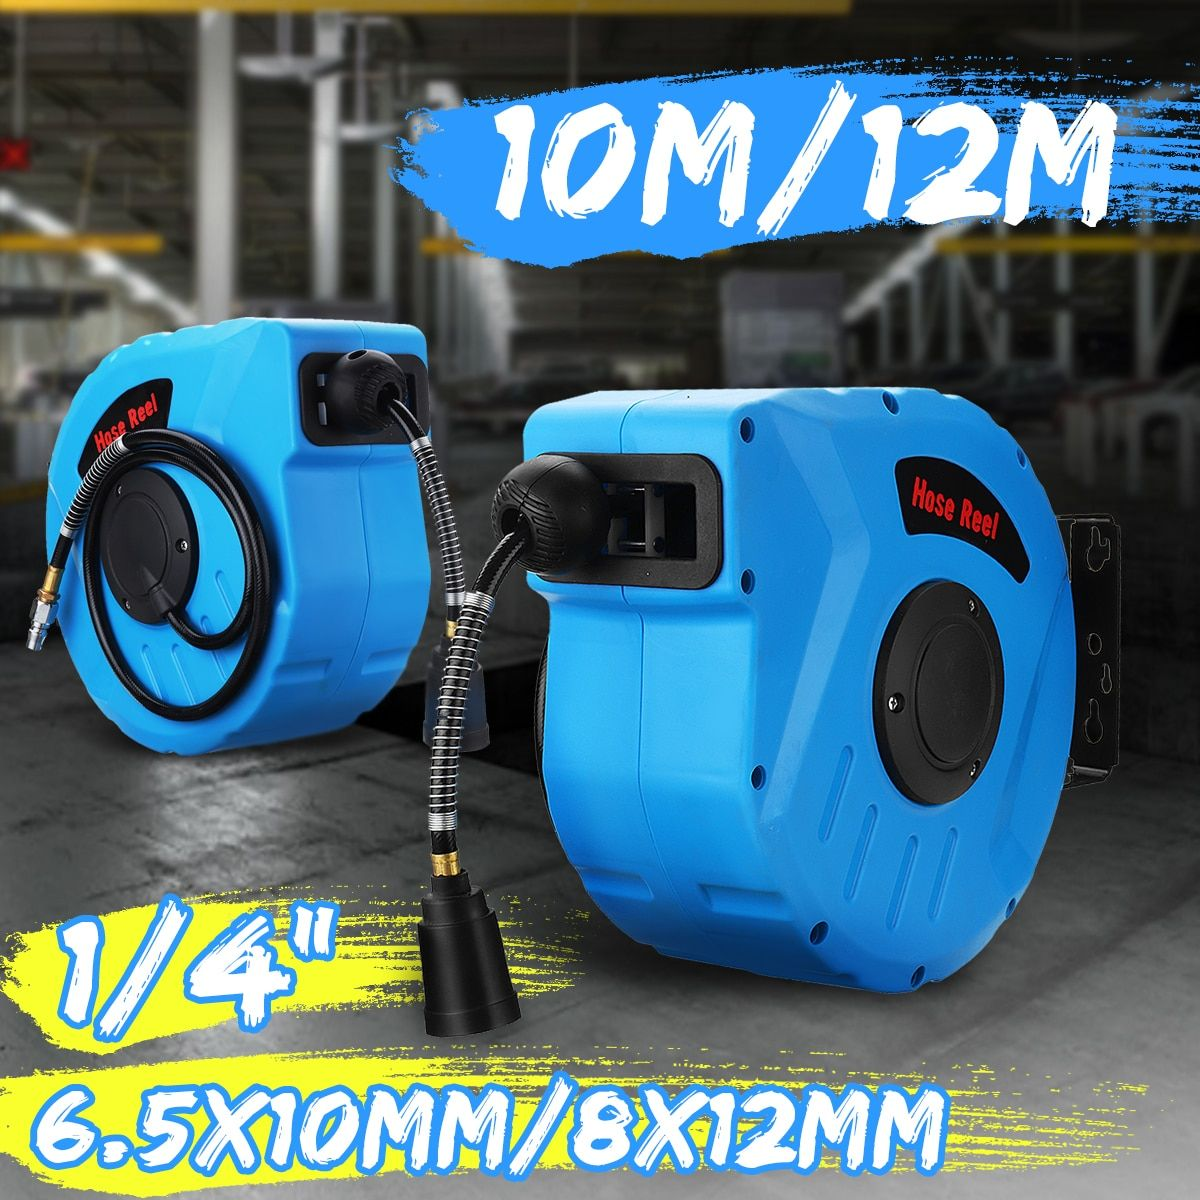 10M/ 12M universal air hose reel for home Auto retractable reel car washer Flexible Garden Air Hose Reel for Clean Dust